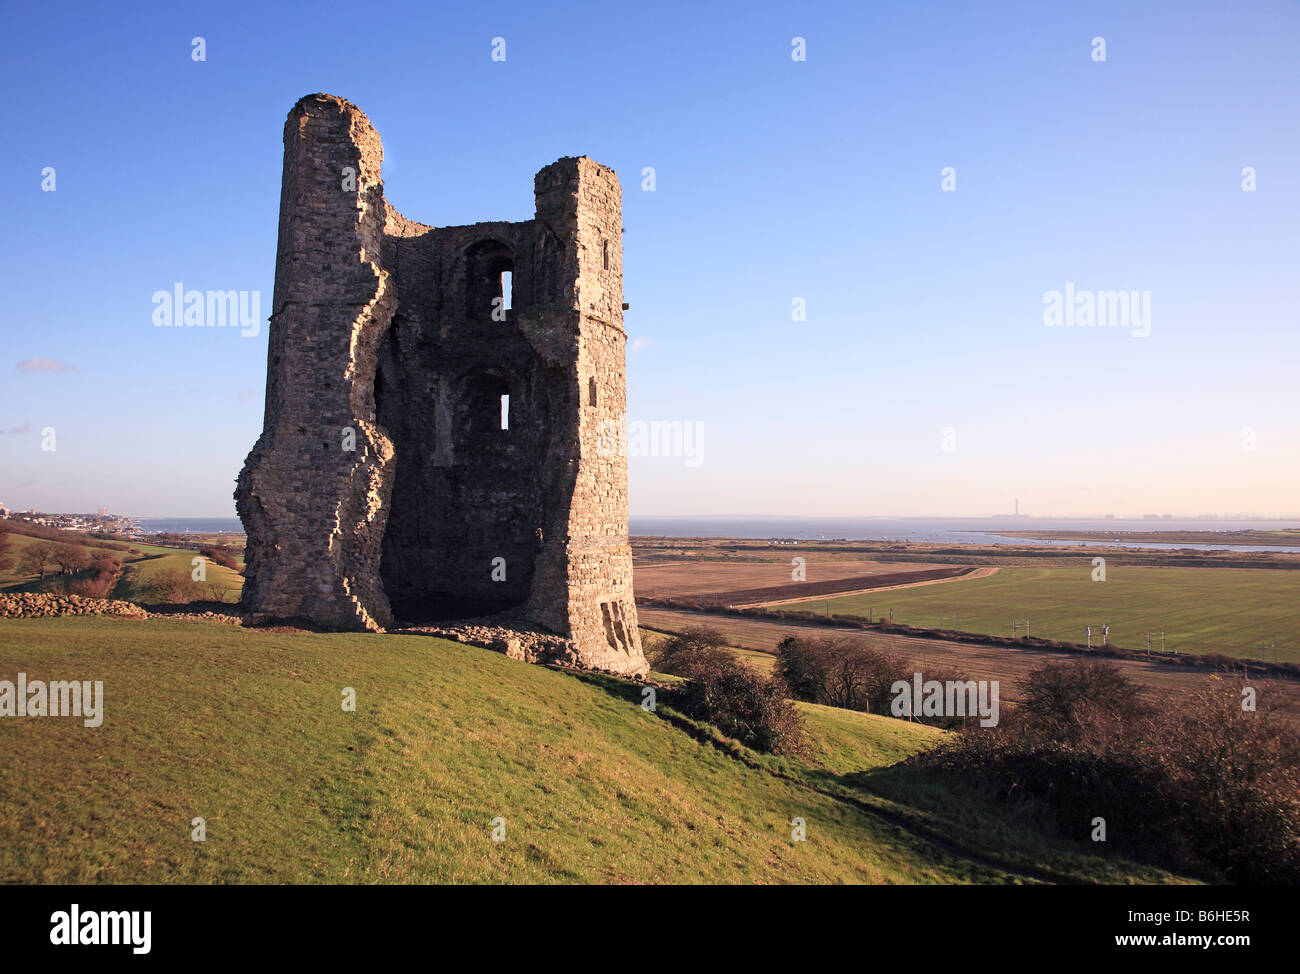 The ruins of Hadleigh Castle in Essex - Stock Image